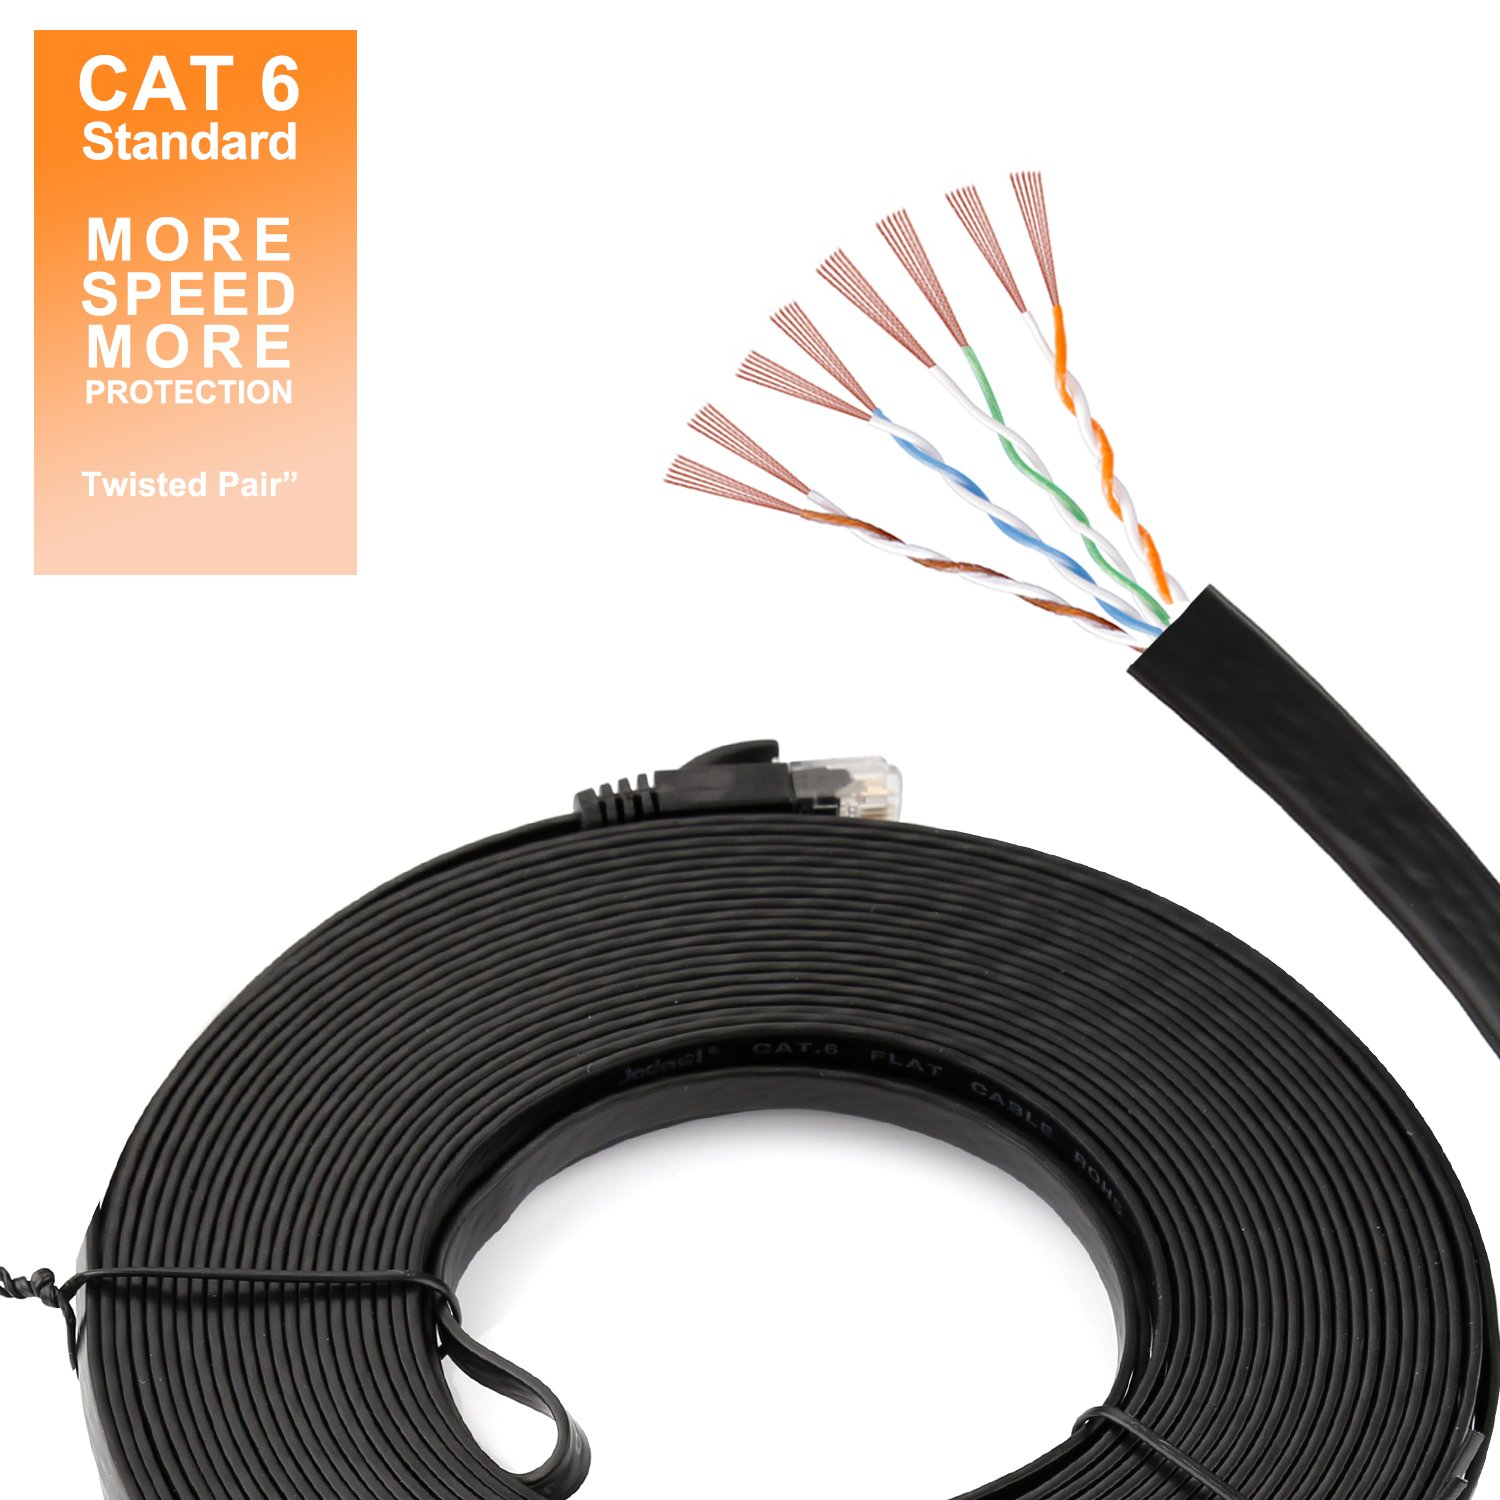 Jadaol Cat 6 Flat Ethernet Cable 100 Ft Black With Rj45 Wiring Diagram On There Are Two Acceptable Standards Tie Clips Slim Long Network Fast Patch Snagless